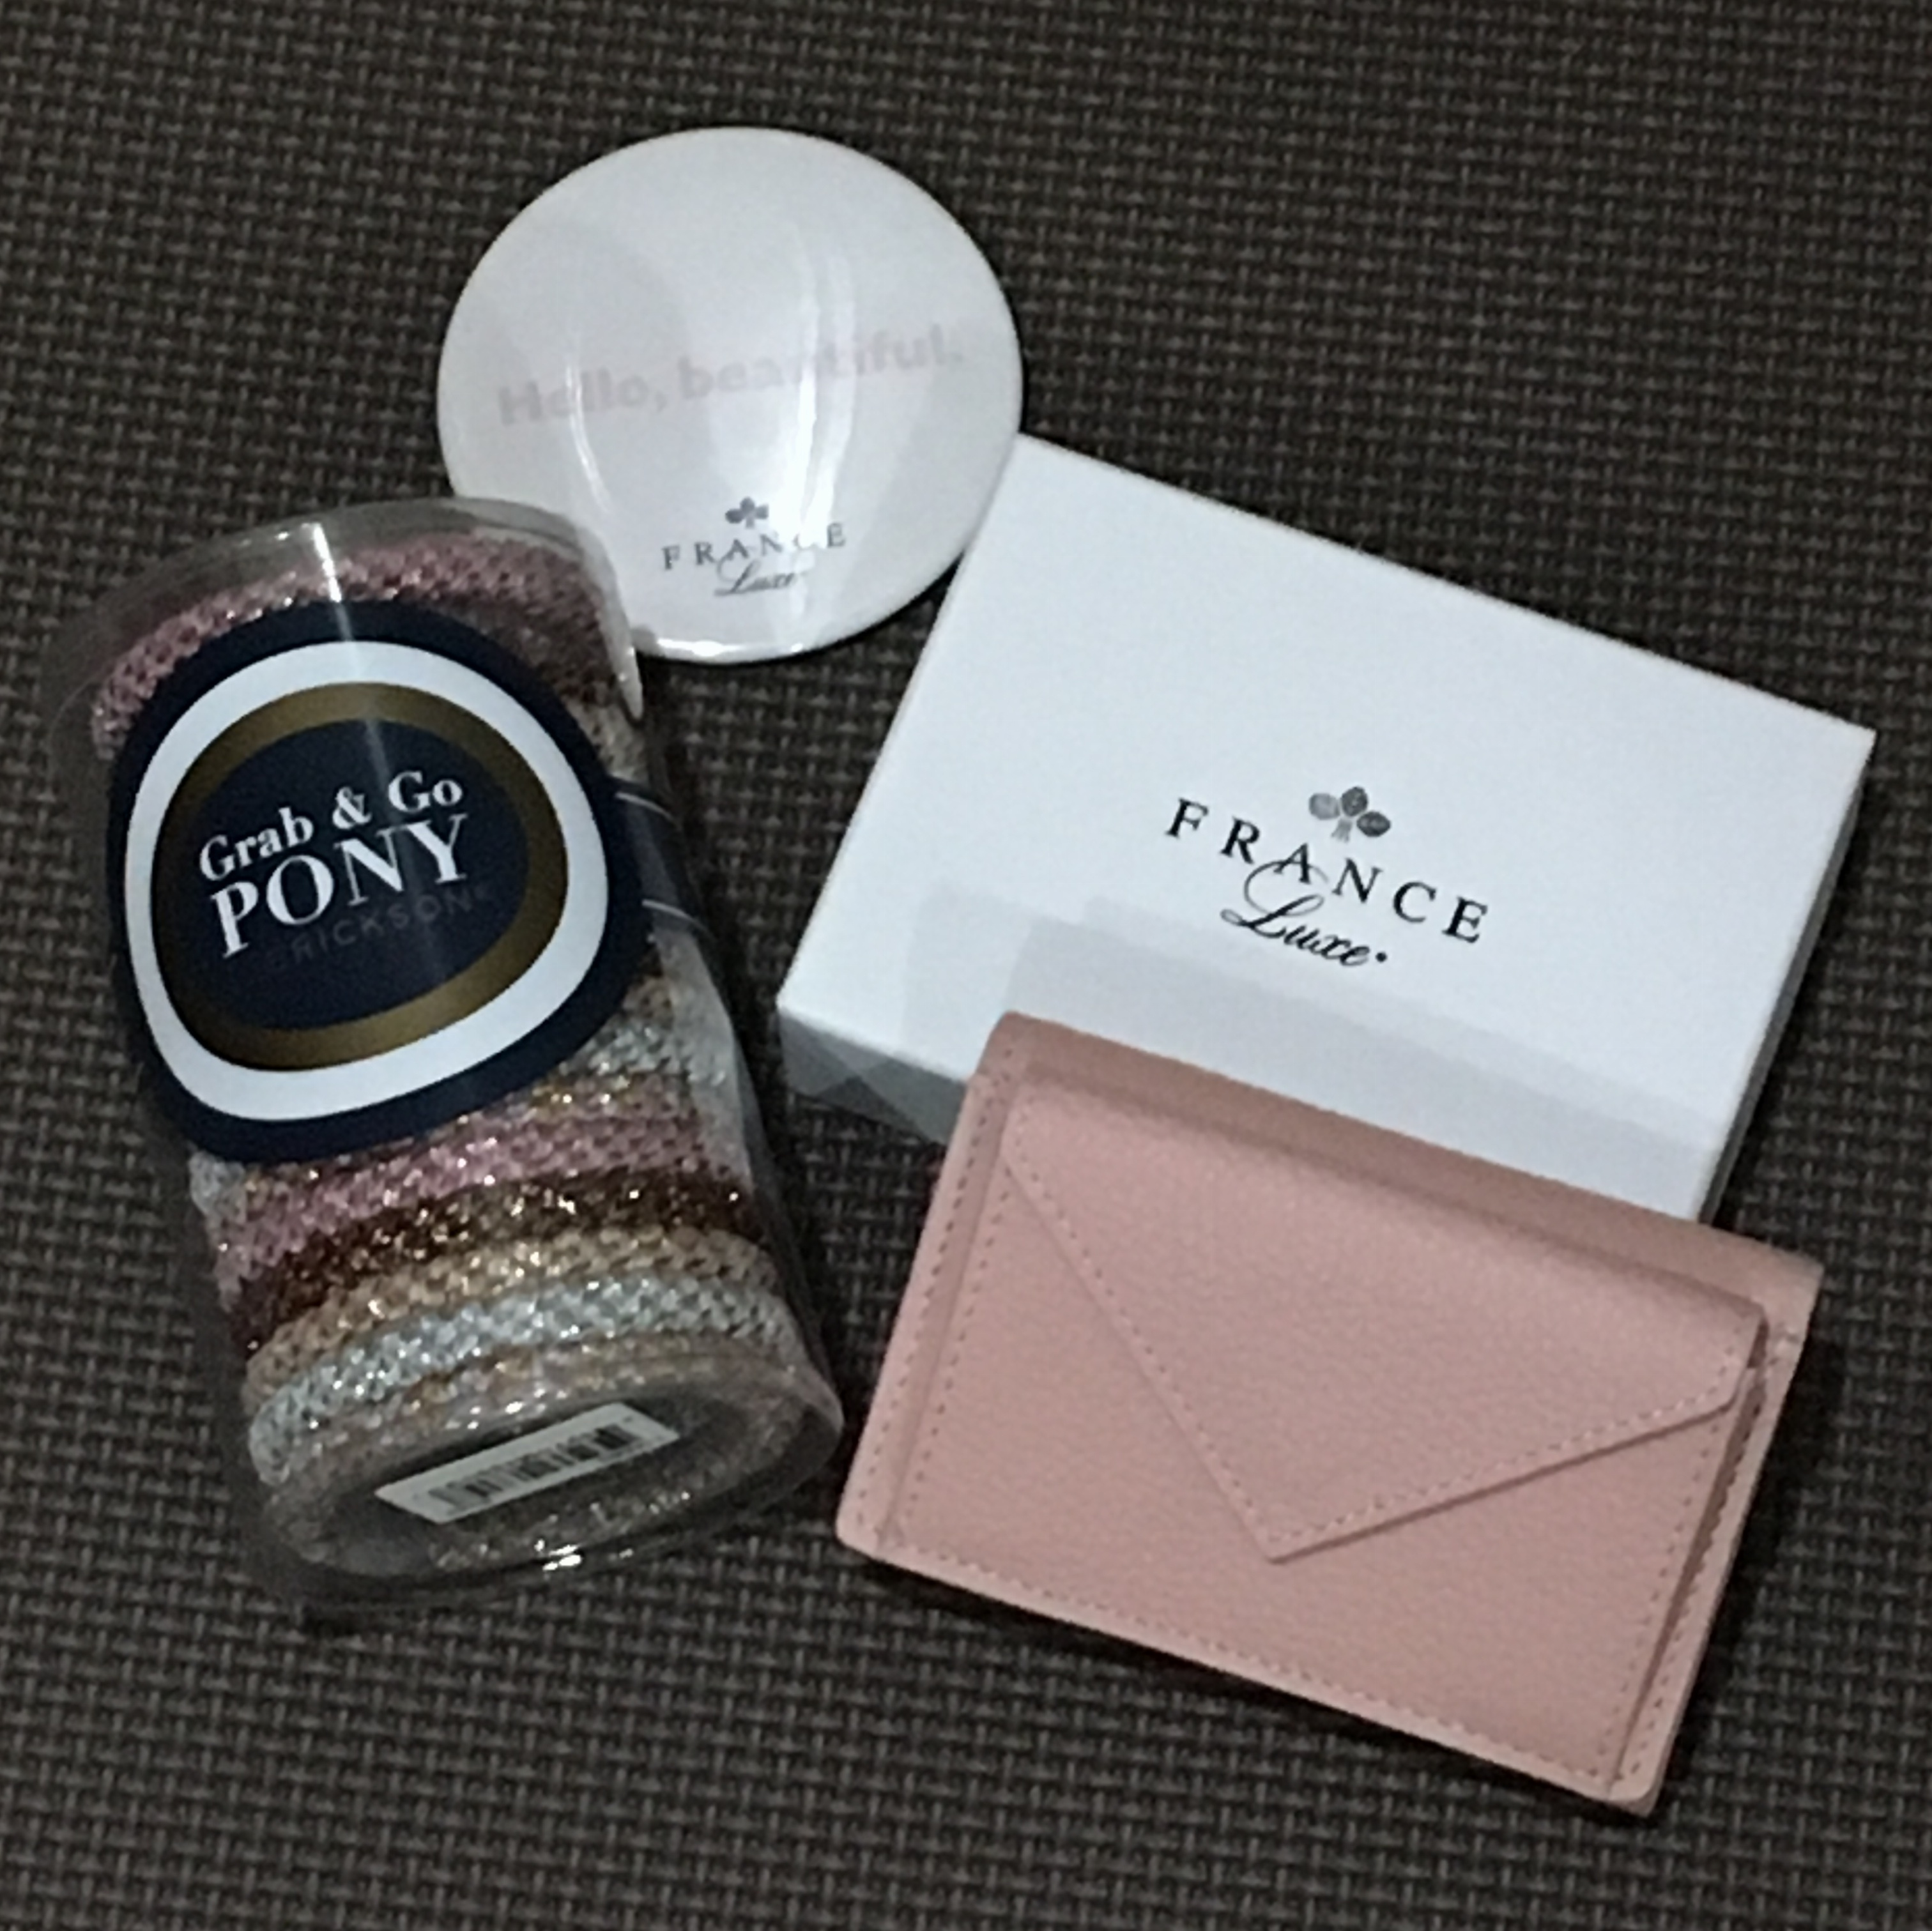 France Luxeの可愛すぎ&実用性高すぎるホリデーギフト♡_1